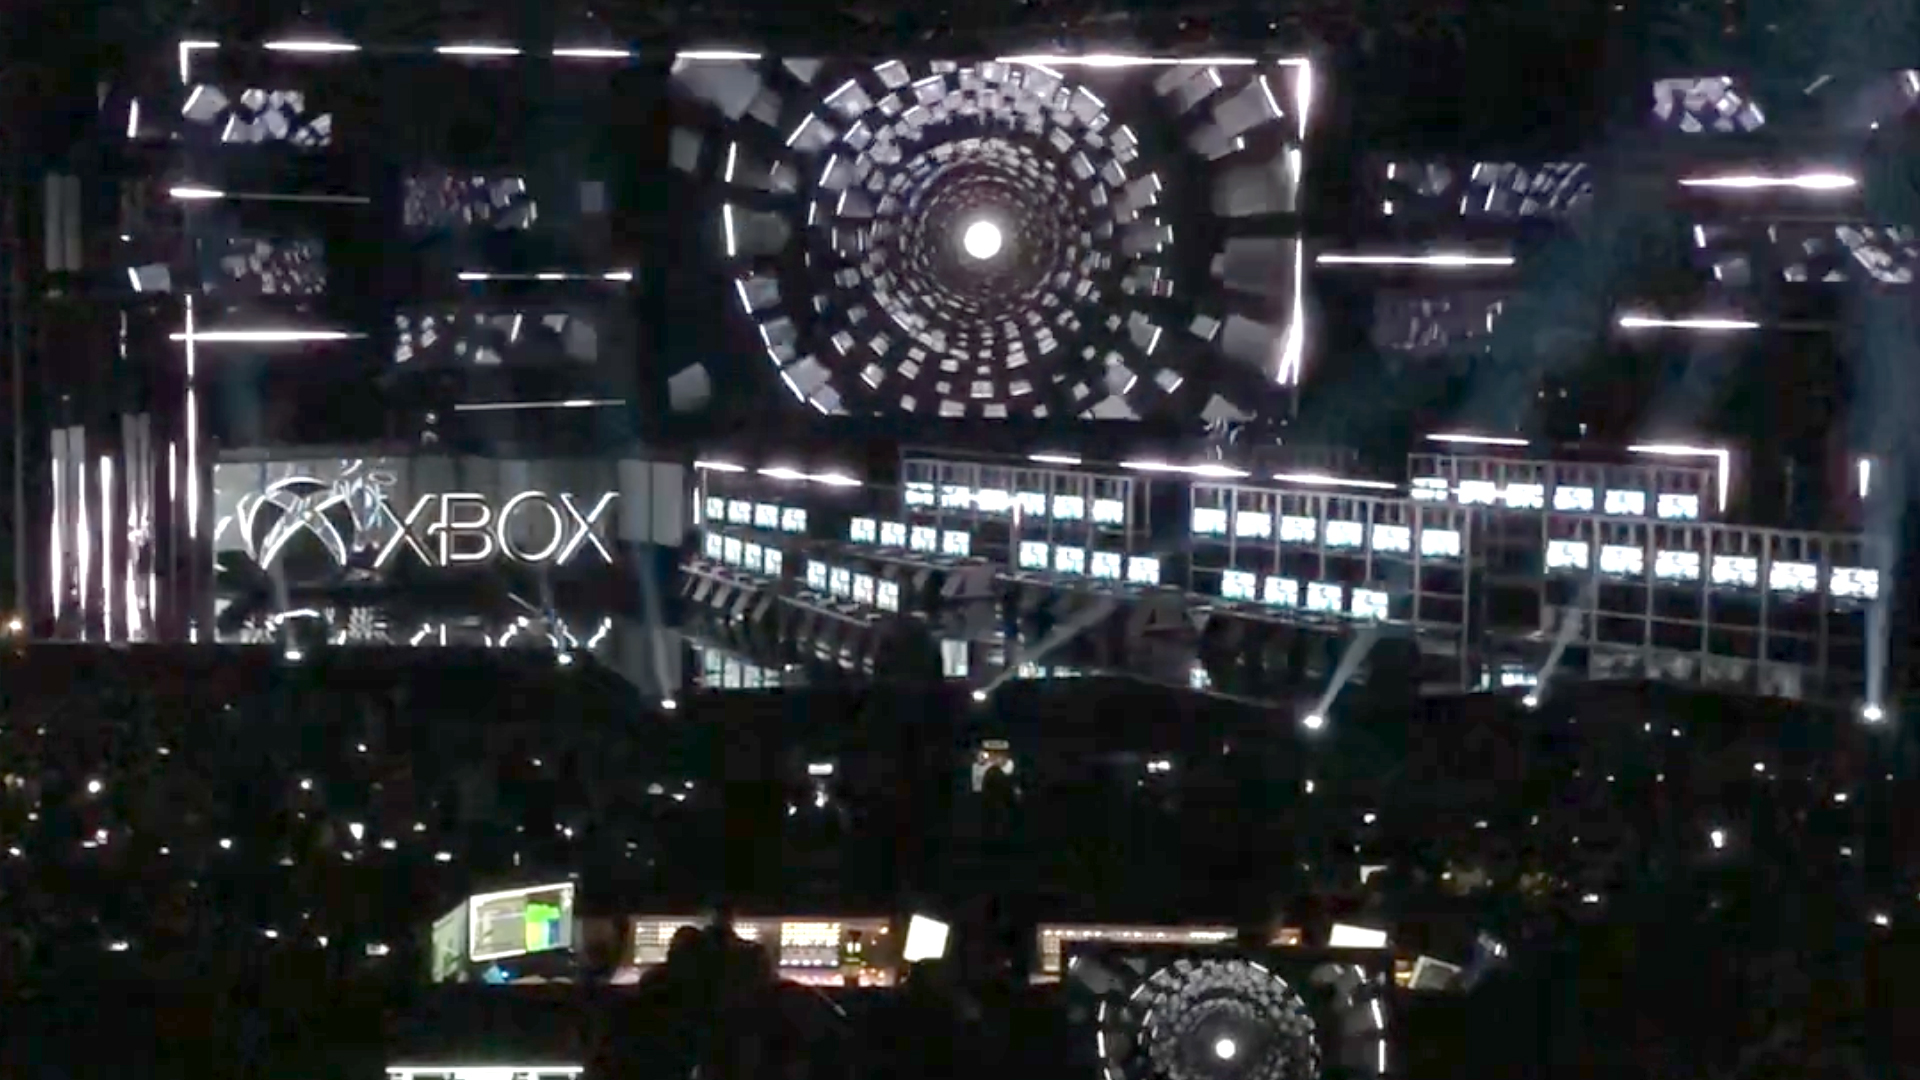 XBox e318 - Stage Design & Broadcast